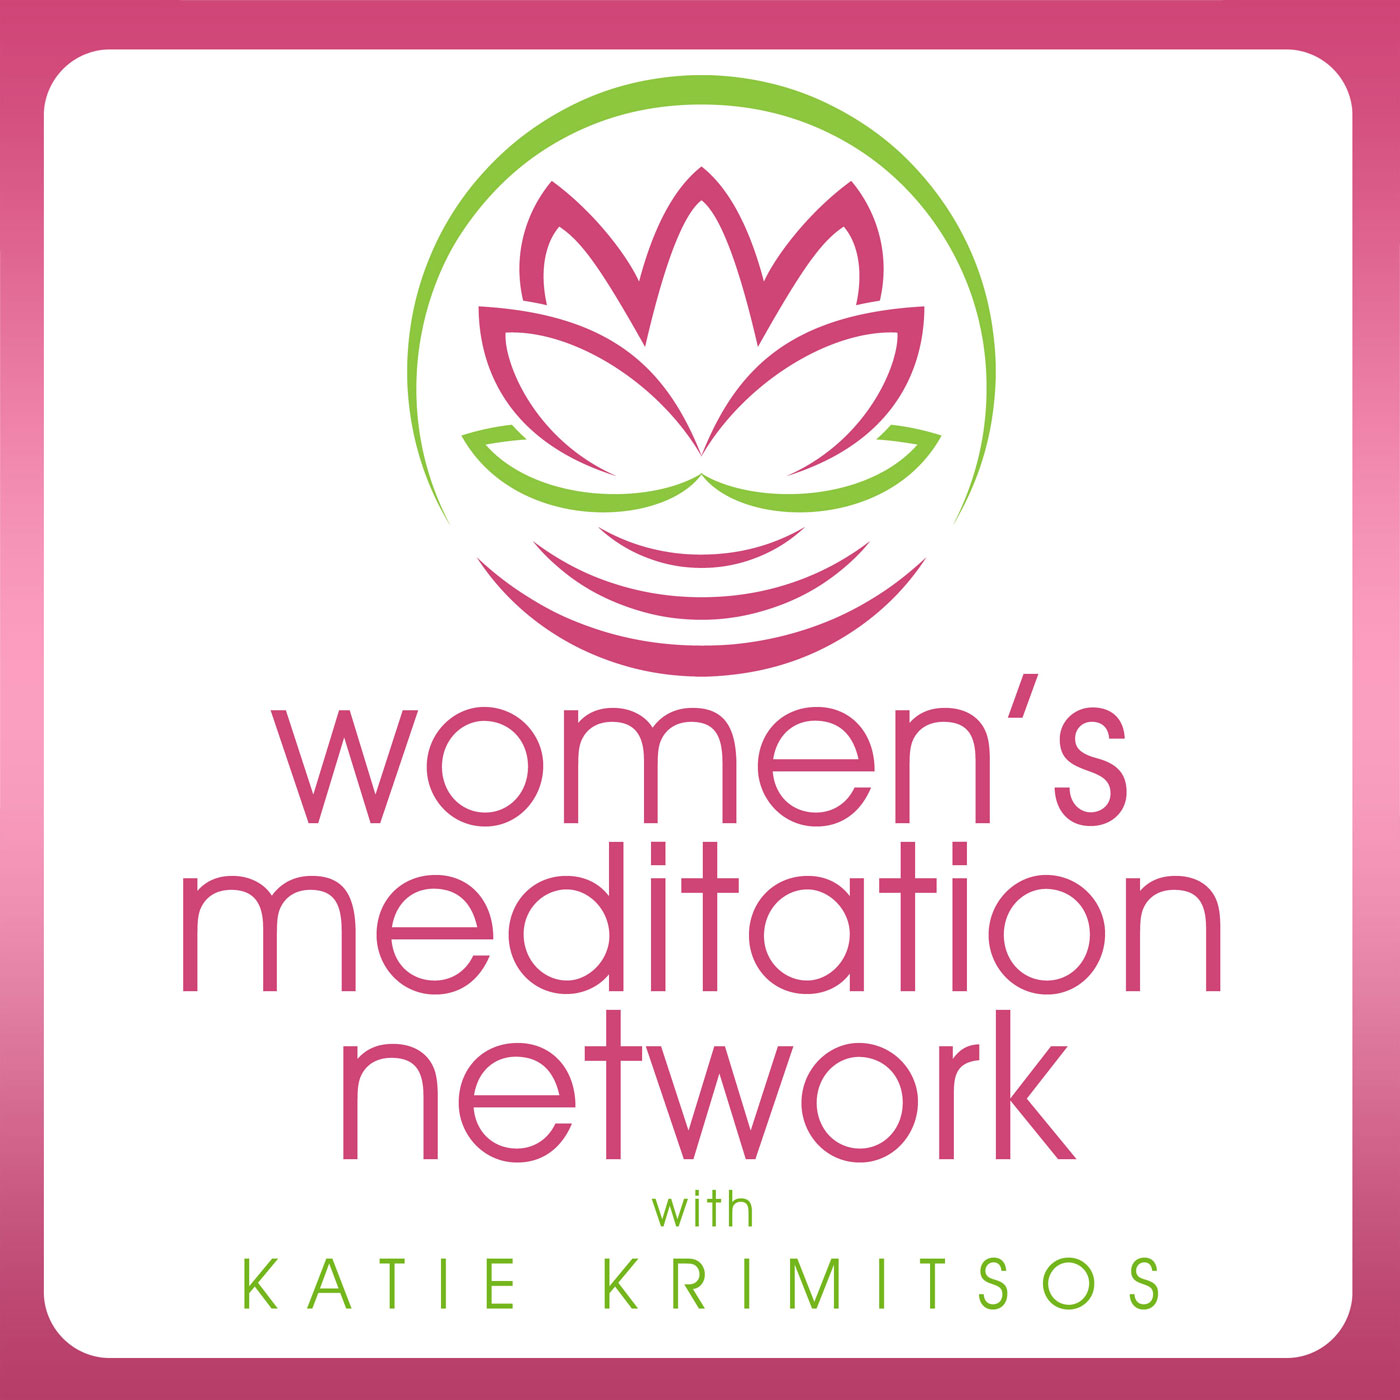 Women's Meditation Network:Katie Krimitsos